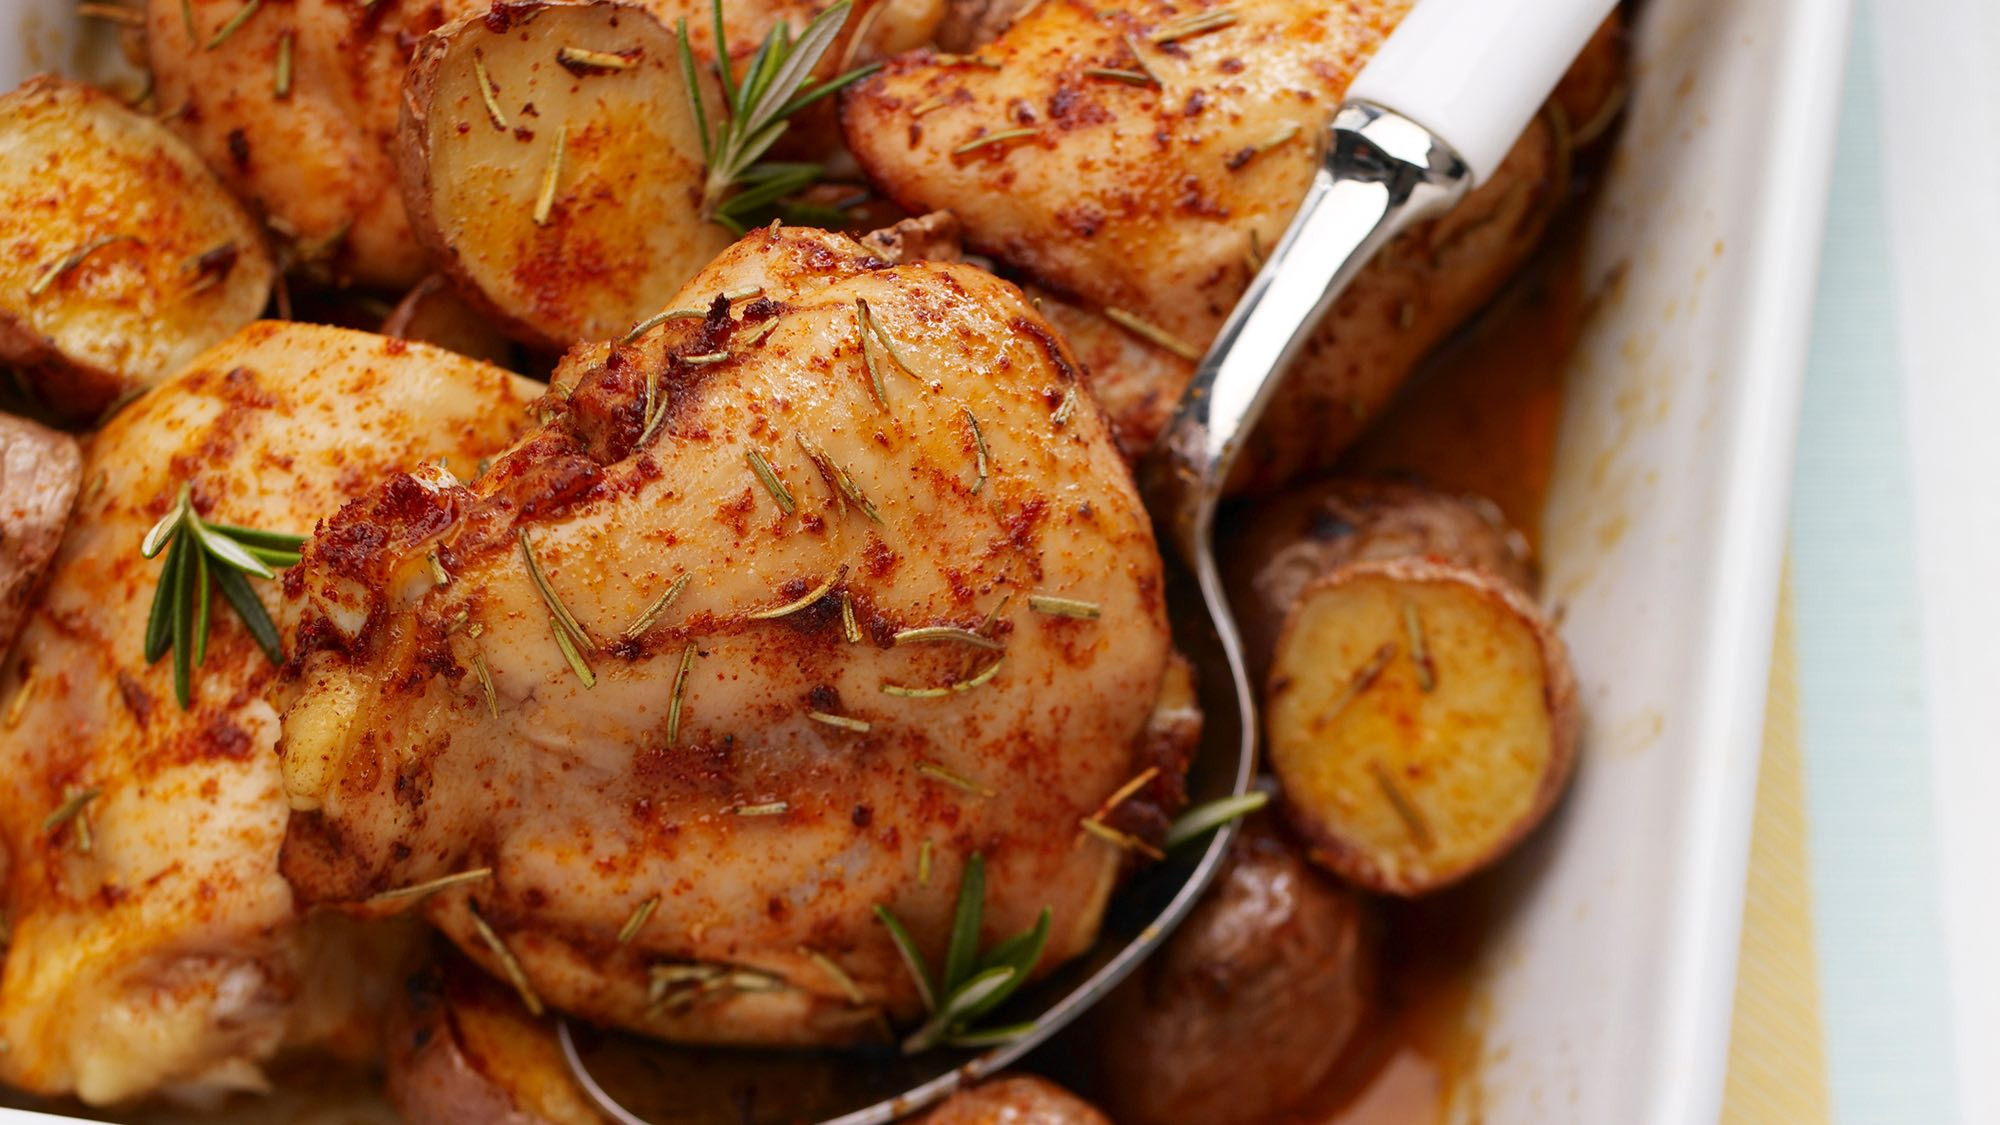 rosemary-baked-chicken-with-potatoes.jpg